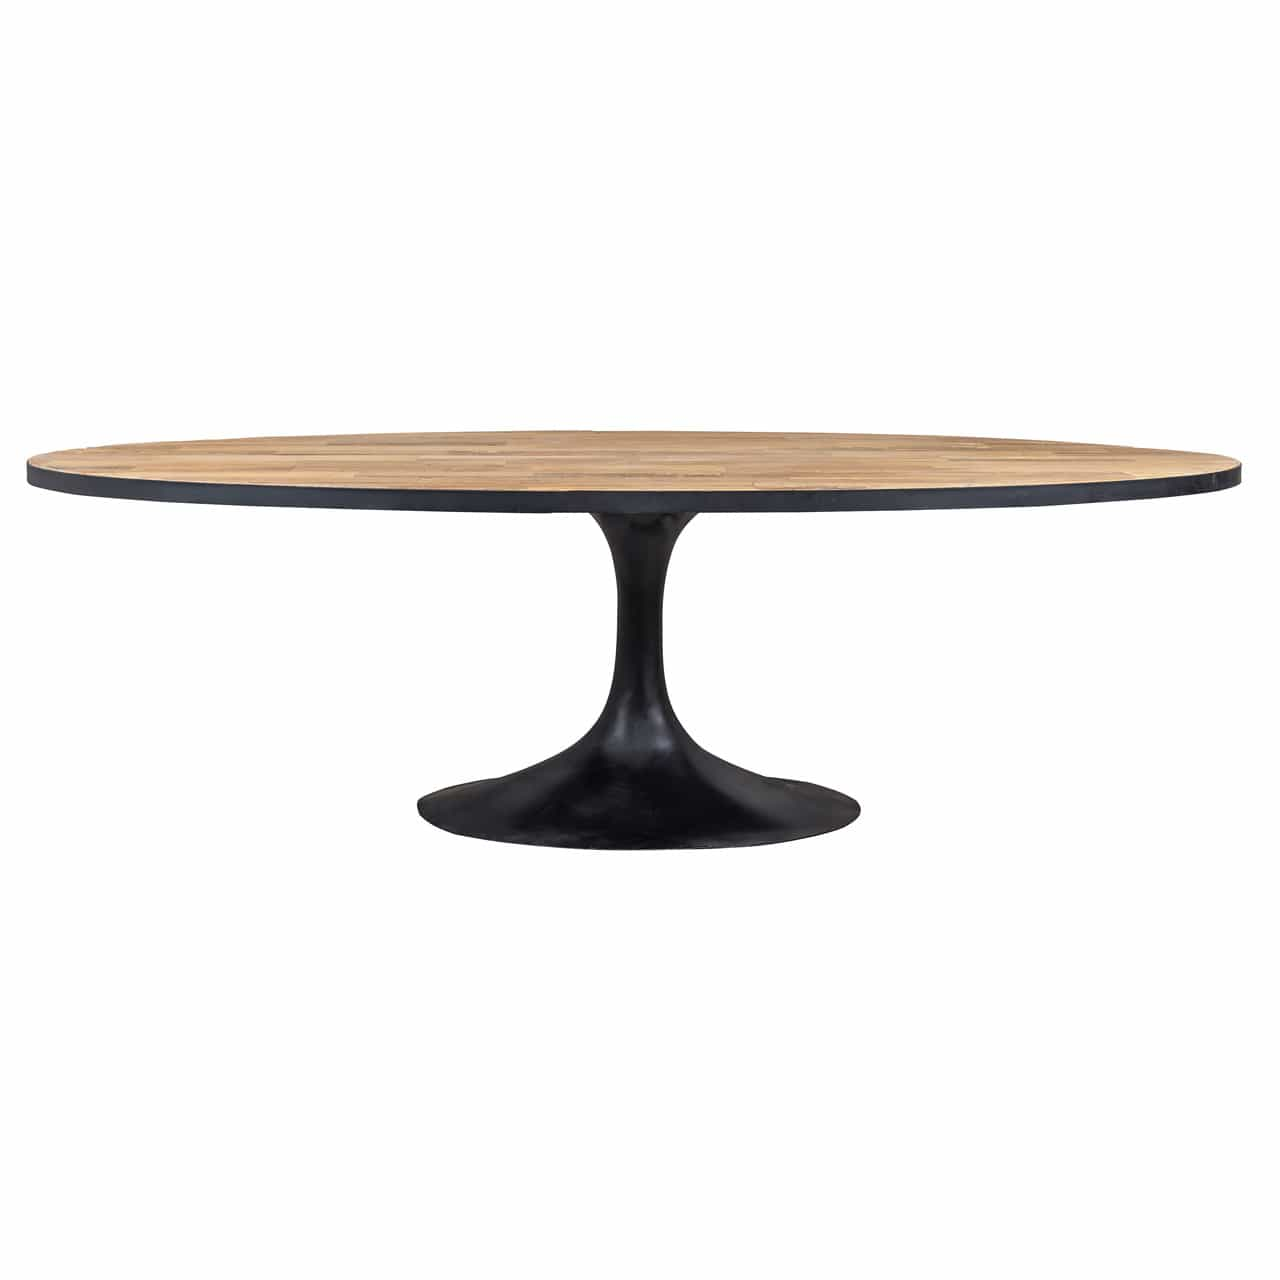 Table Bois Fer Design Table Design Plateau Ovale Pied Central Metal Bois Deco Nord